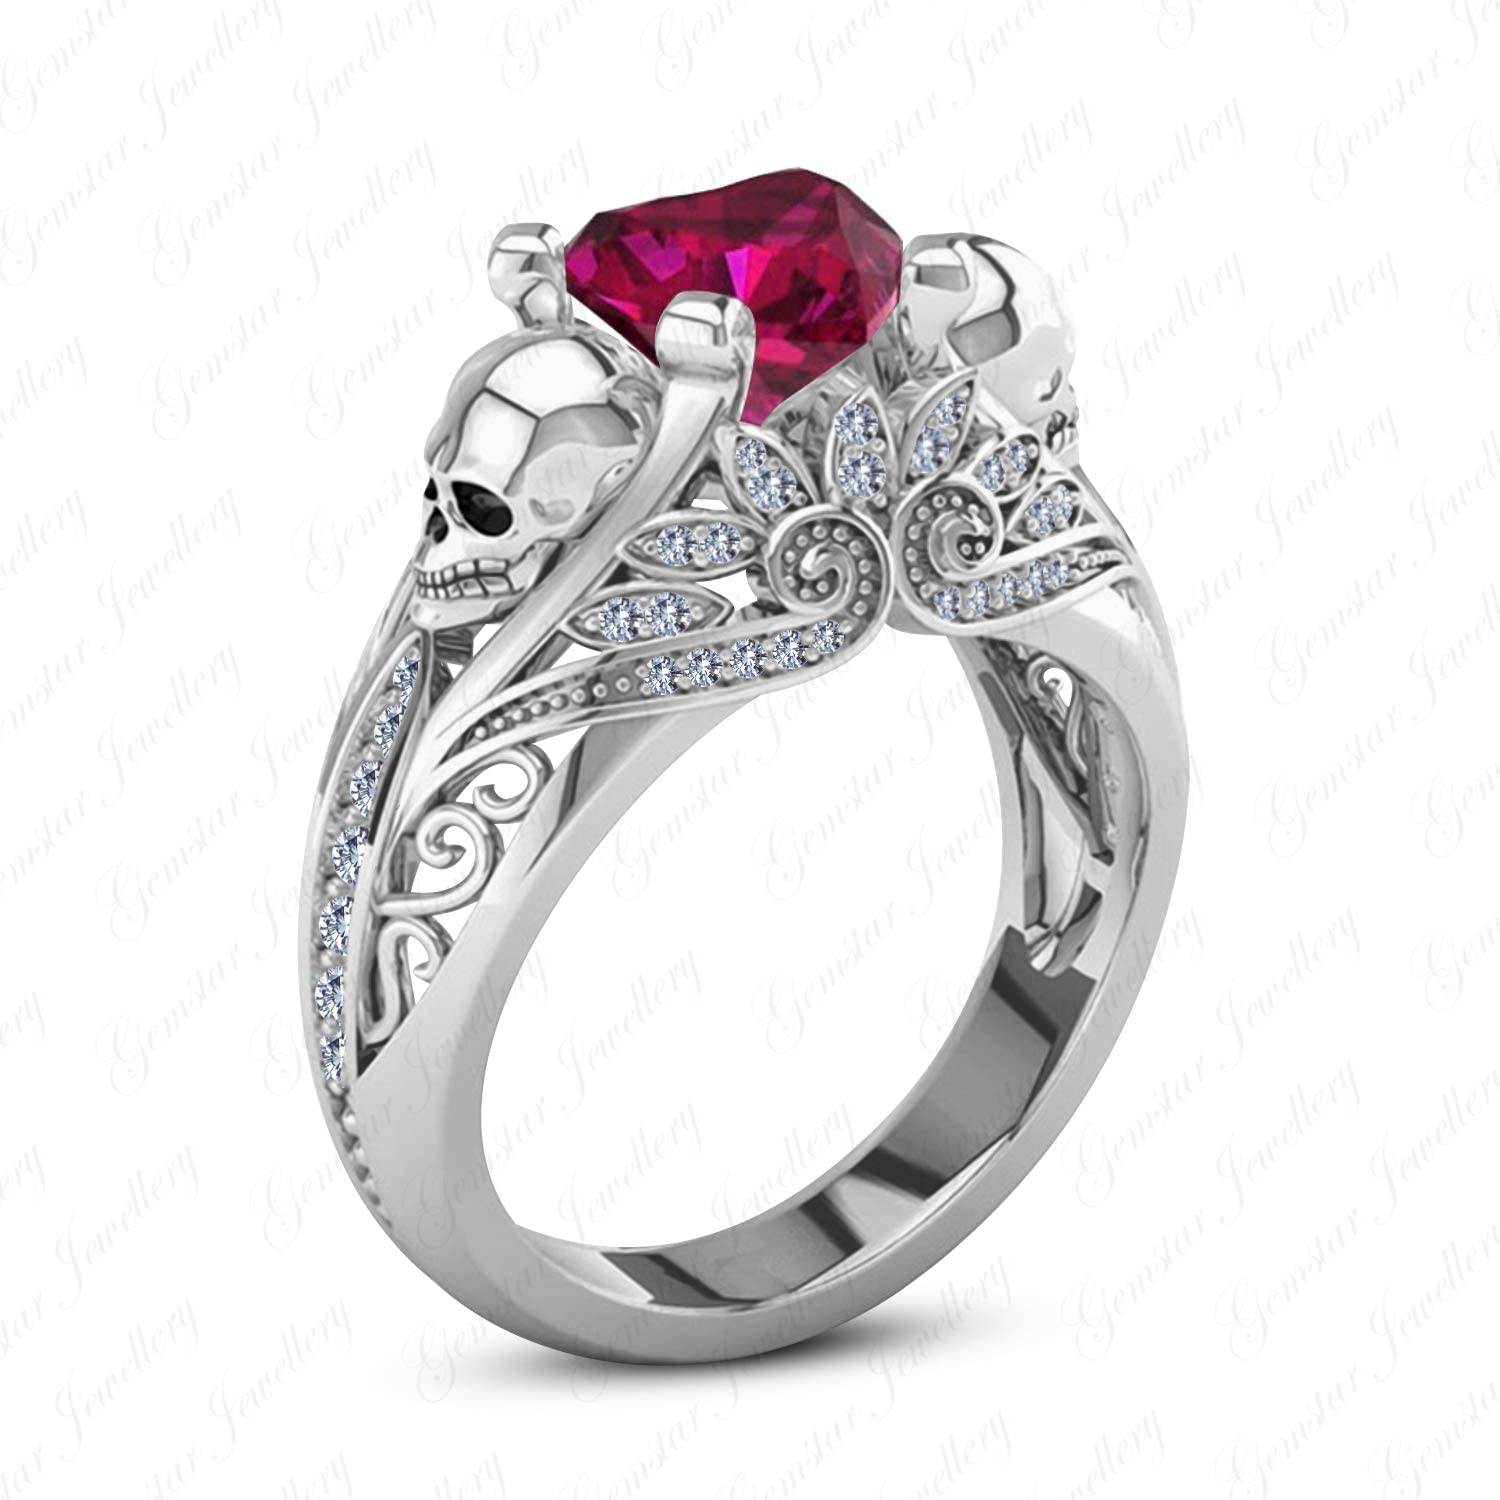 Gemstar Jewellery 18k White gold Filled Heart Cut Red Ruby Women's 925 Sterling Silver Skull Ring